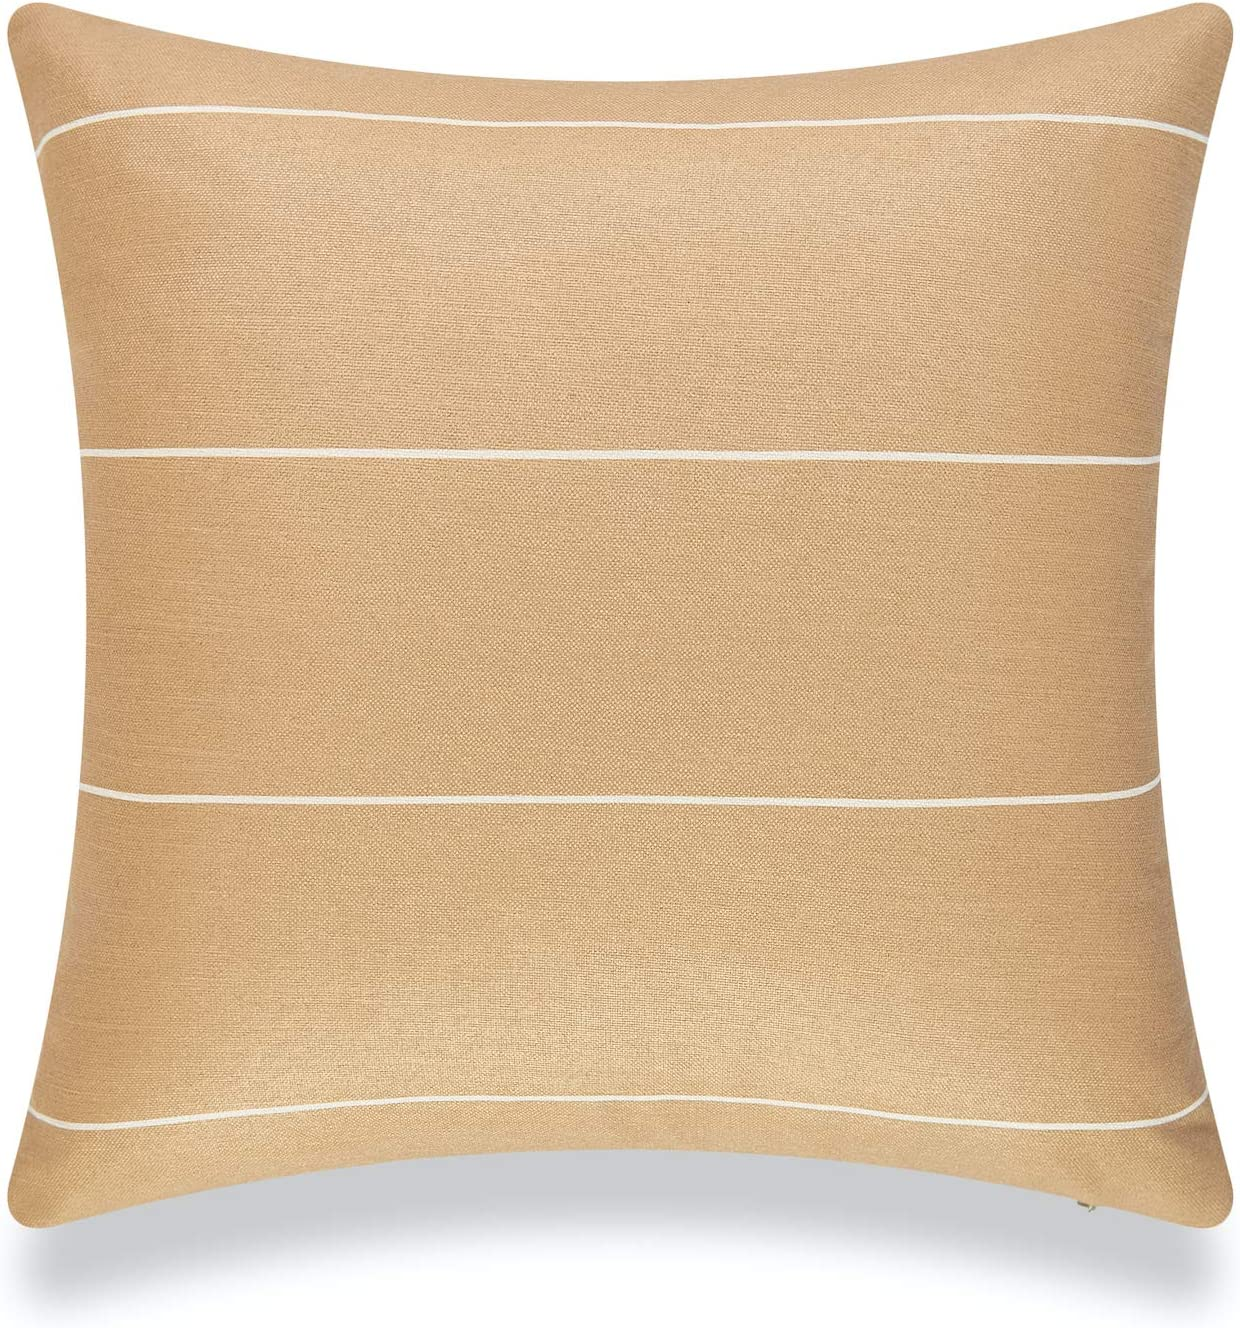 Hofdeco Modern Boho Patio Indoor Outdoor supreme Discount is also underway Cover B Pillow for ONLY